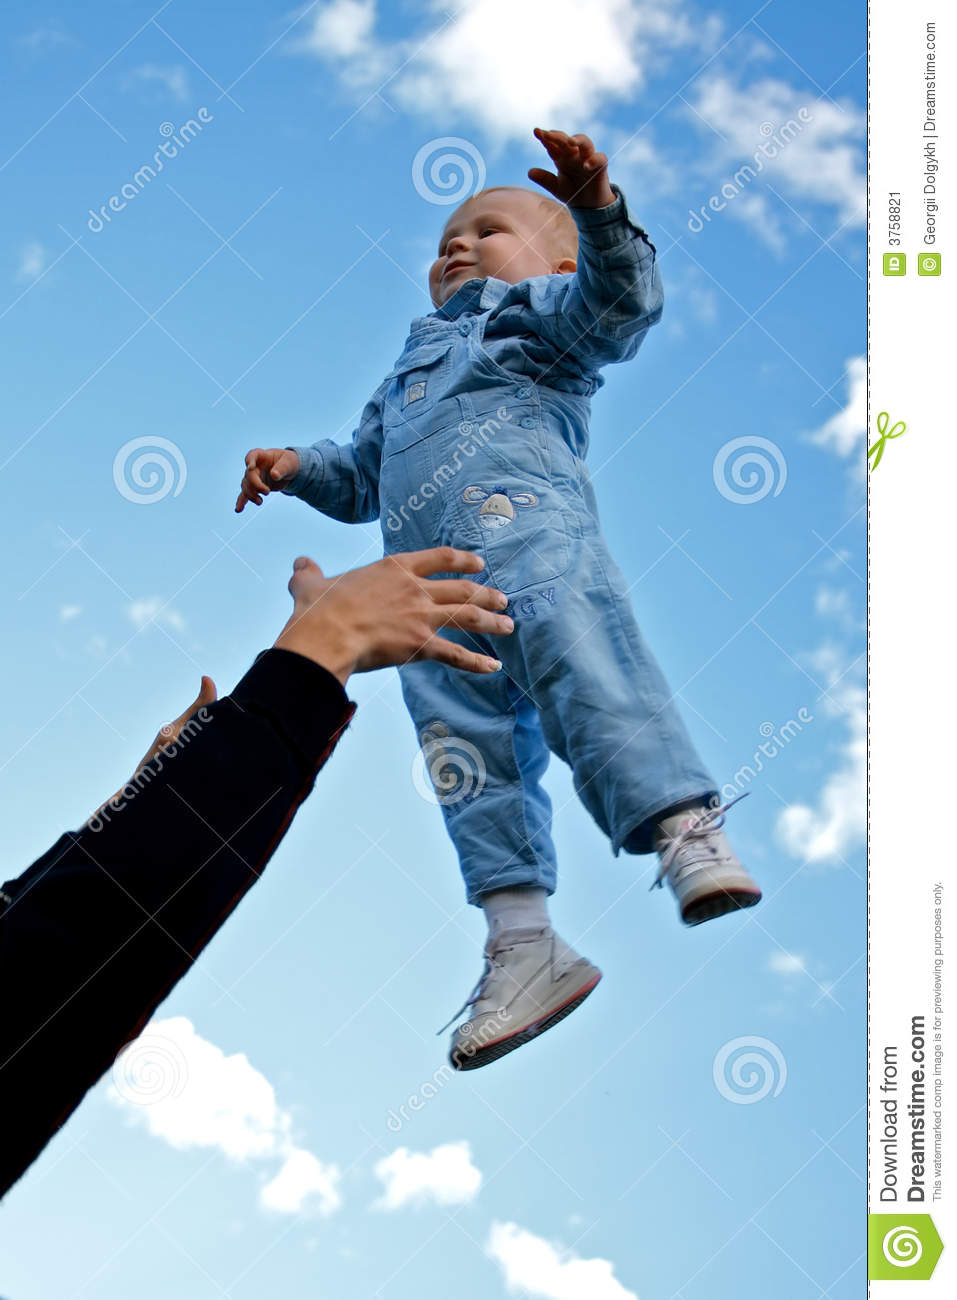 Child Thrown Up In The Air Stock Image - Image: 3758821